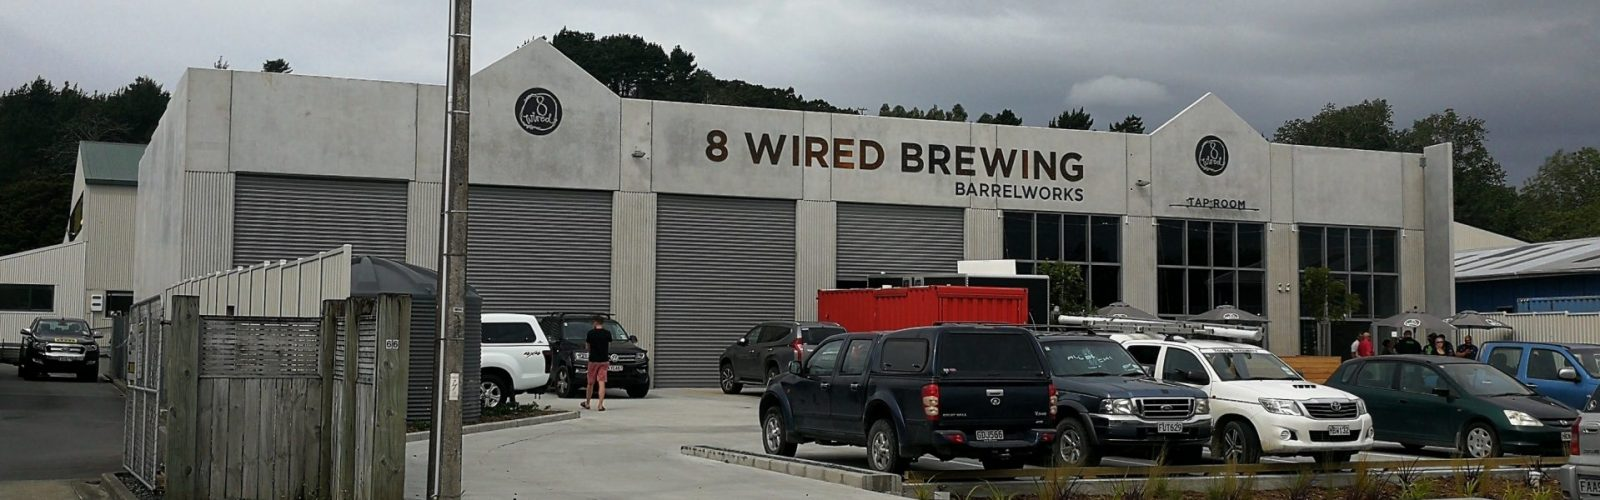 8 Wired Brewery - Header Image